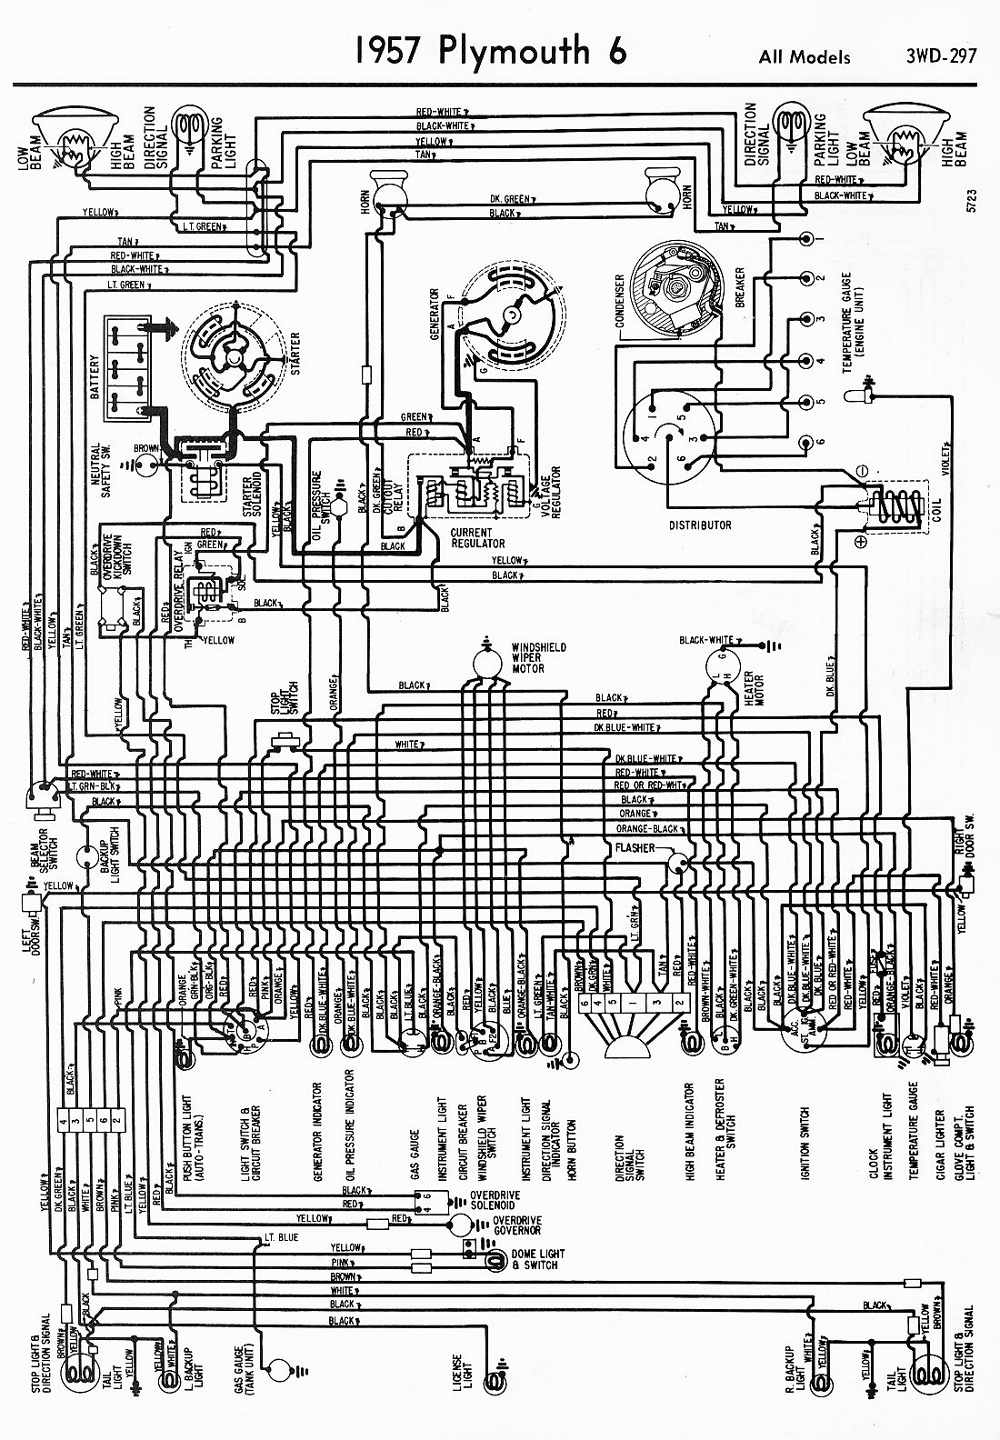 wiring diagrams 911 1957 plymouth 6 all models wiring diagram rh wiringdiagrams911 blogspot com Positive Ground Plymouth Wiring-Diagram Generation 4 Wiring Diagram Chevy